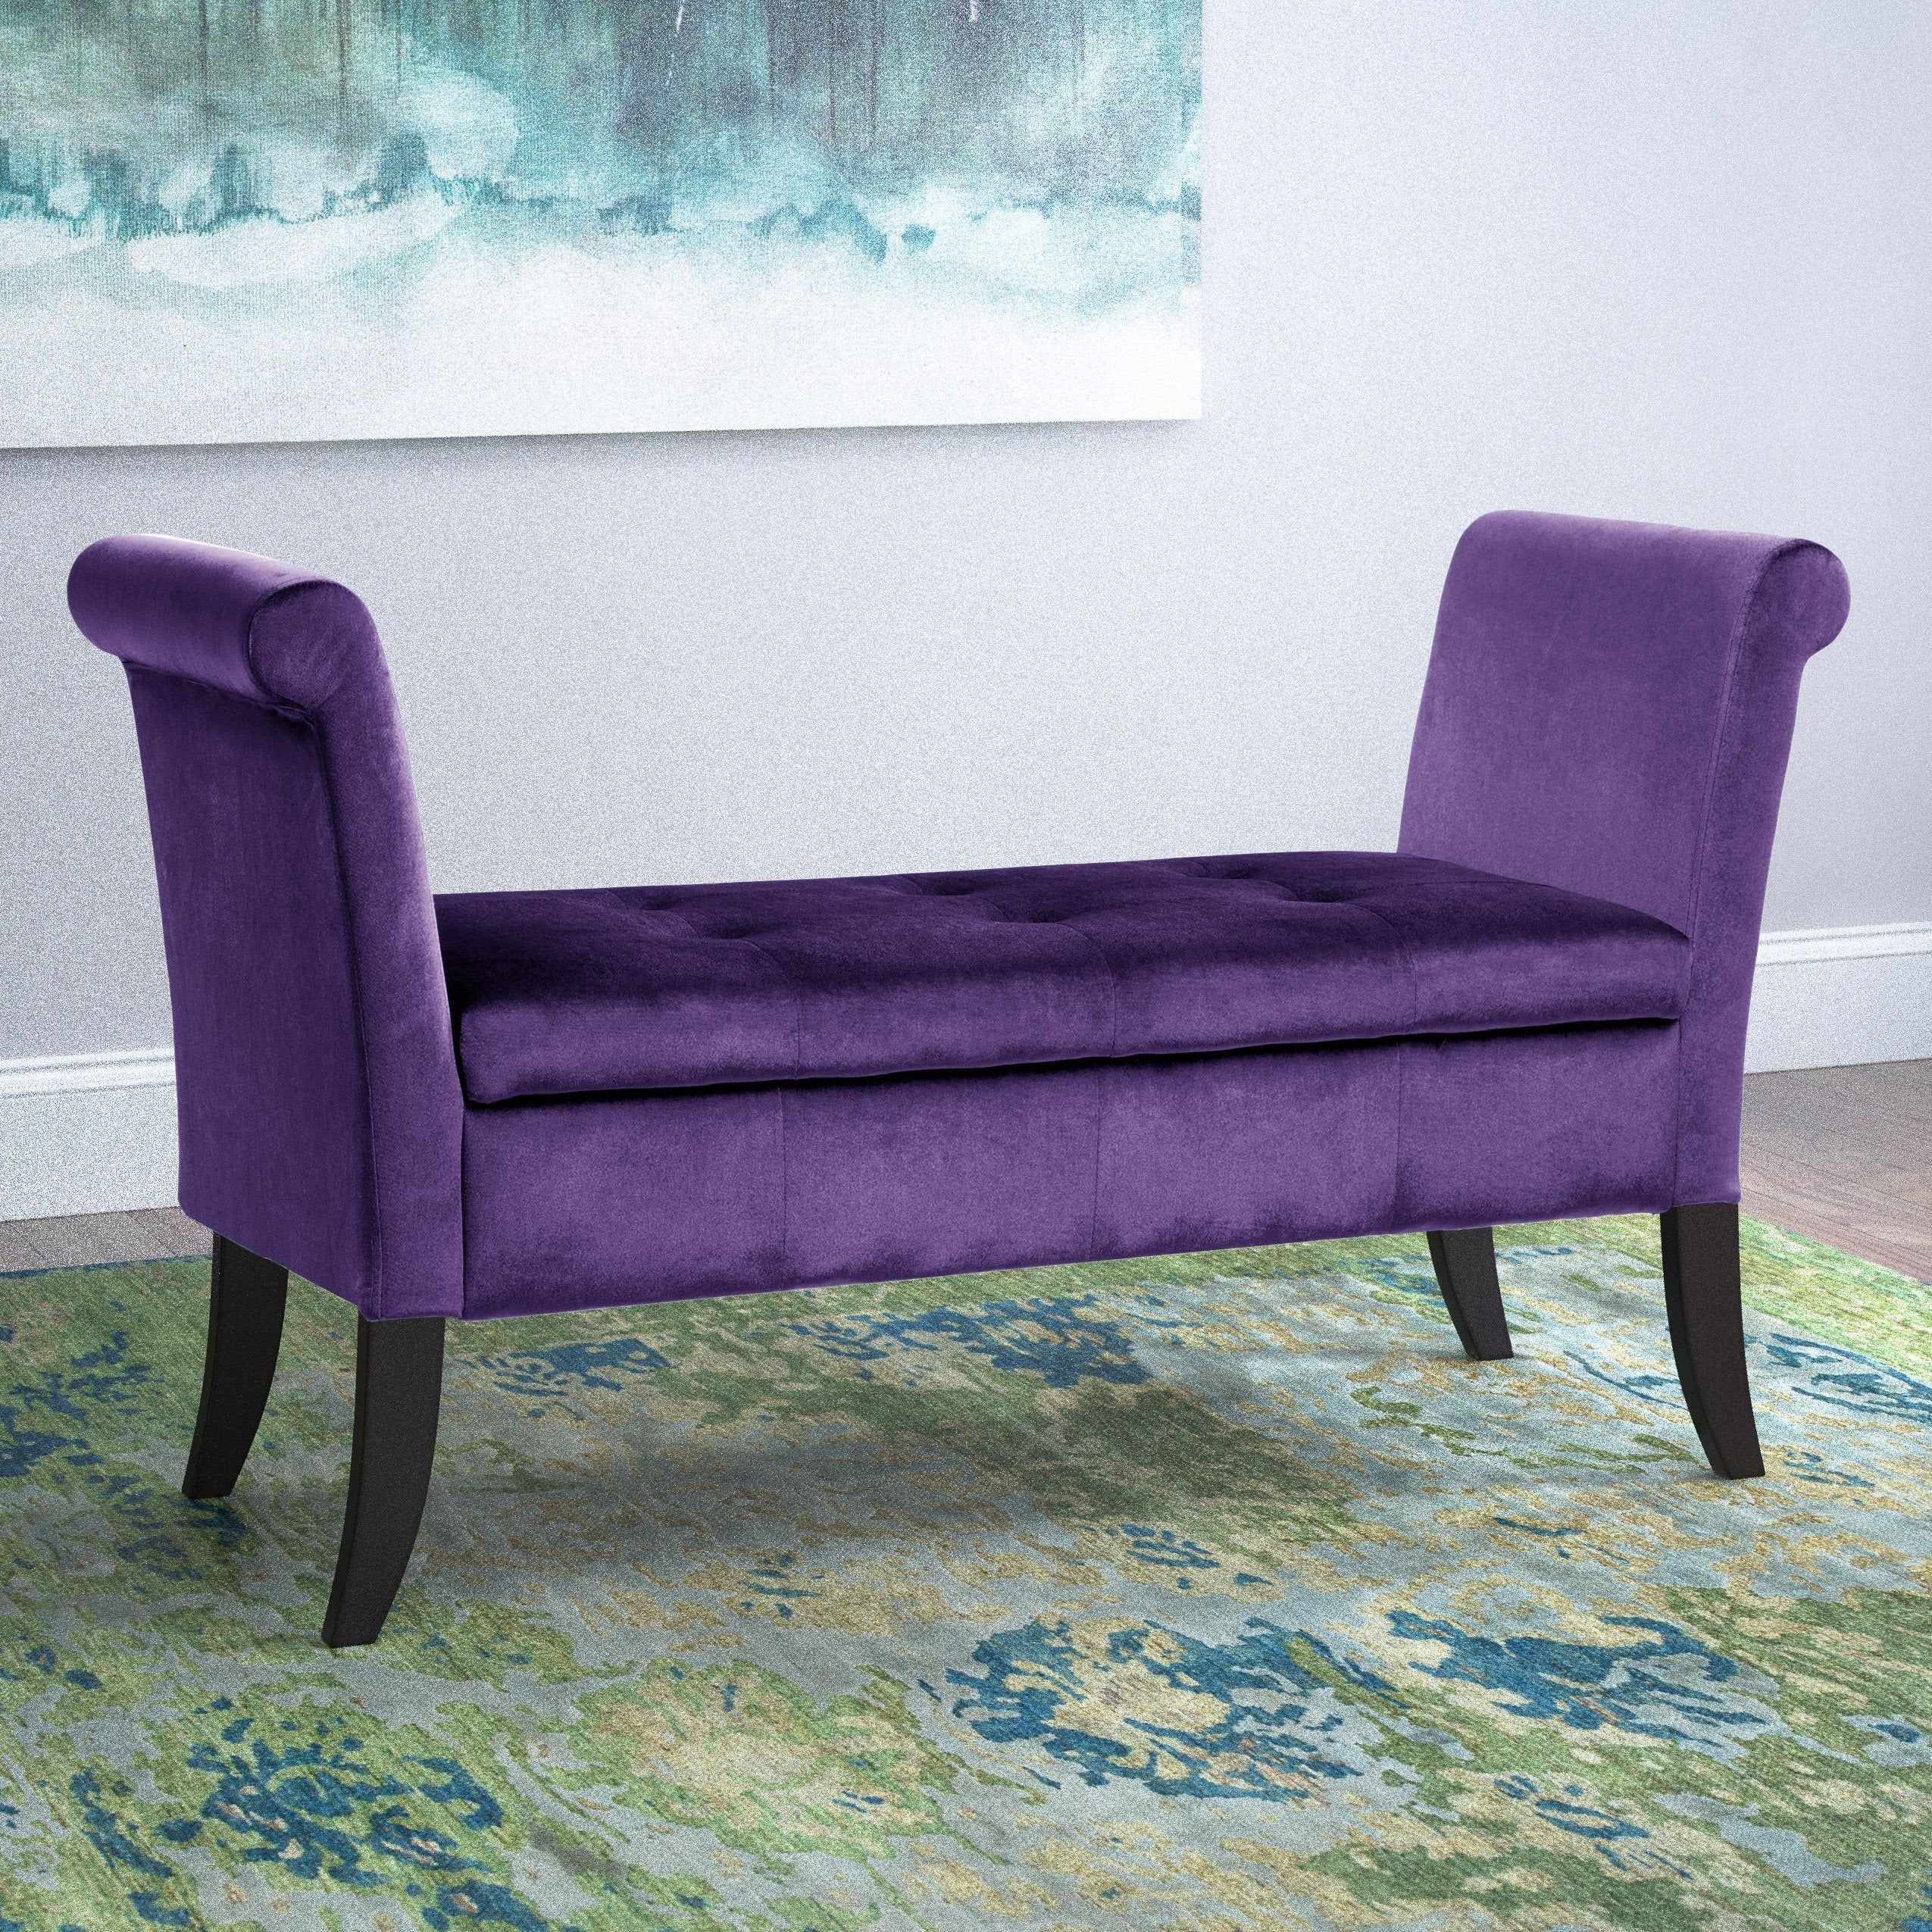 Velvet Like Fabric Storage Bench With Scrolled Arms